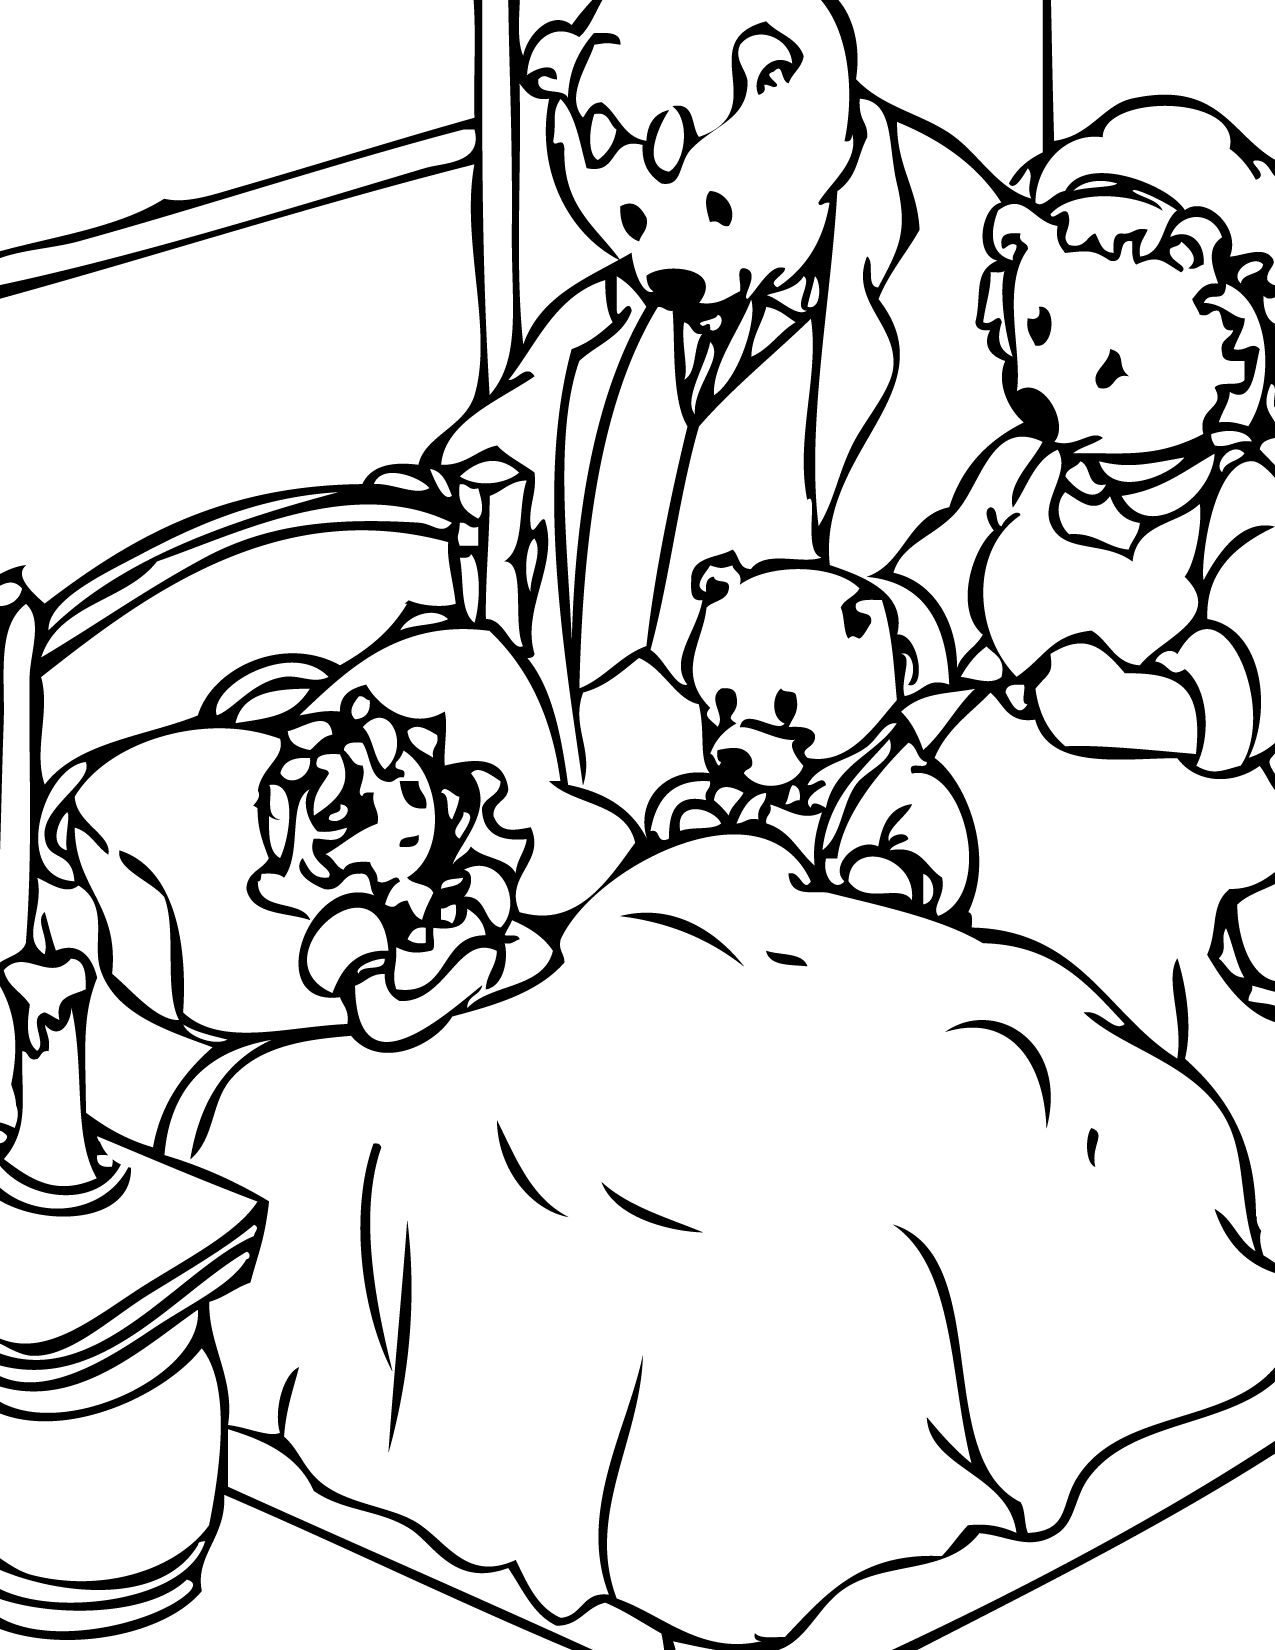 1275x1650 Goldilocks And The Three Bears Coloring Pages Printable Coloring